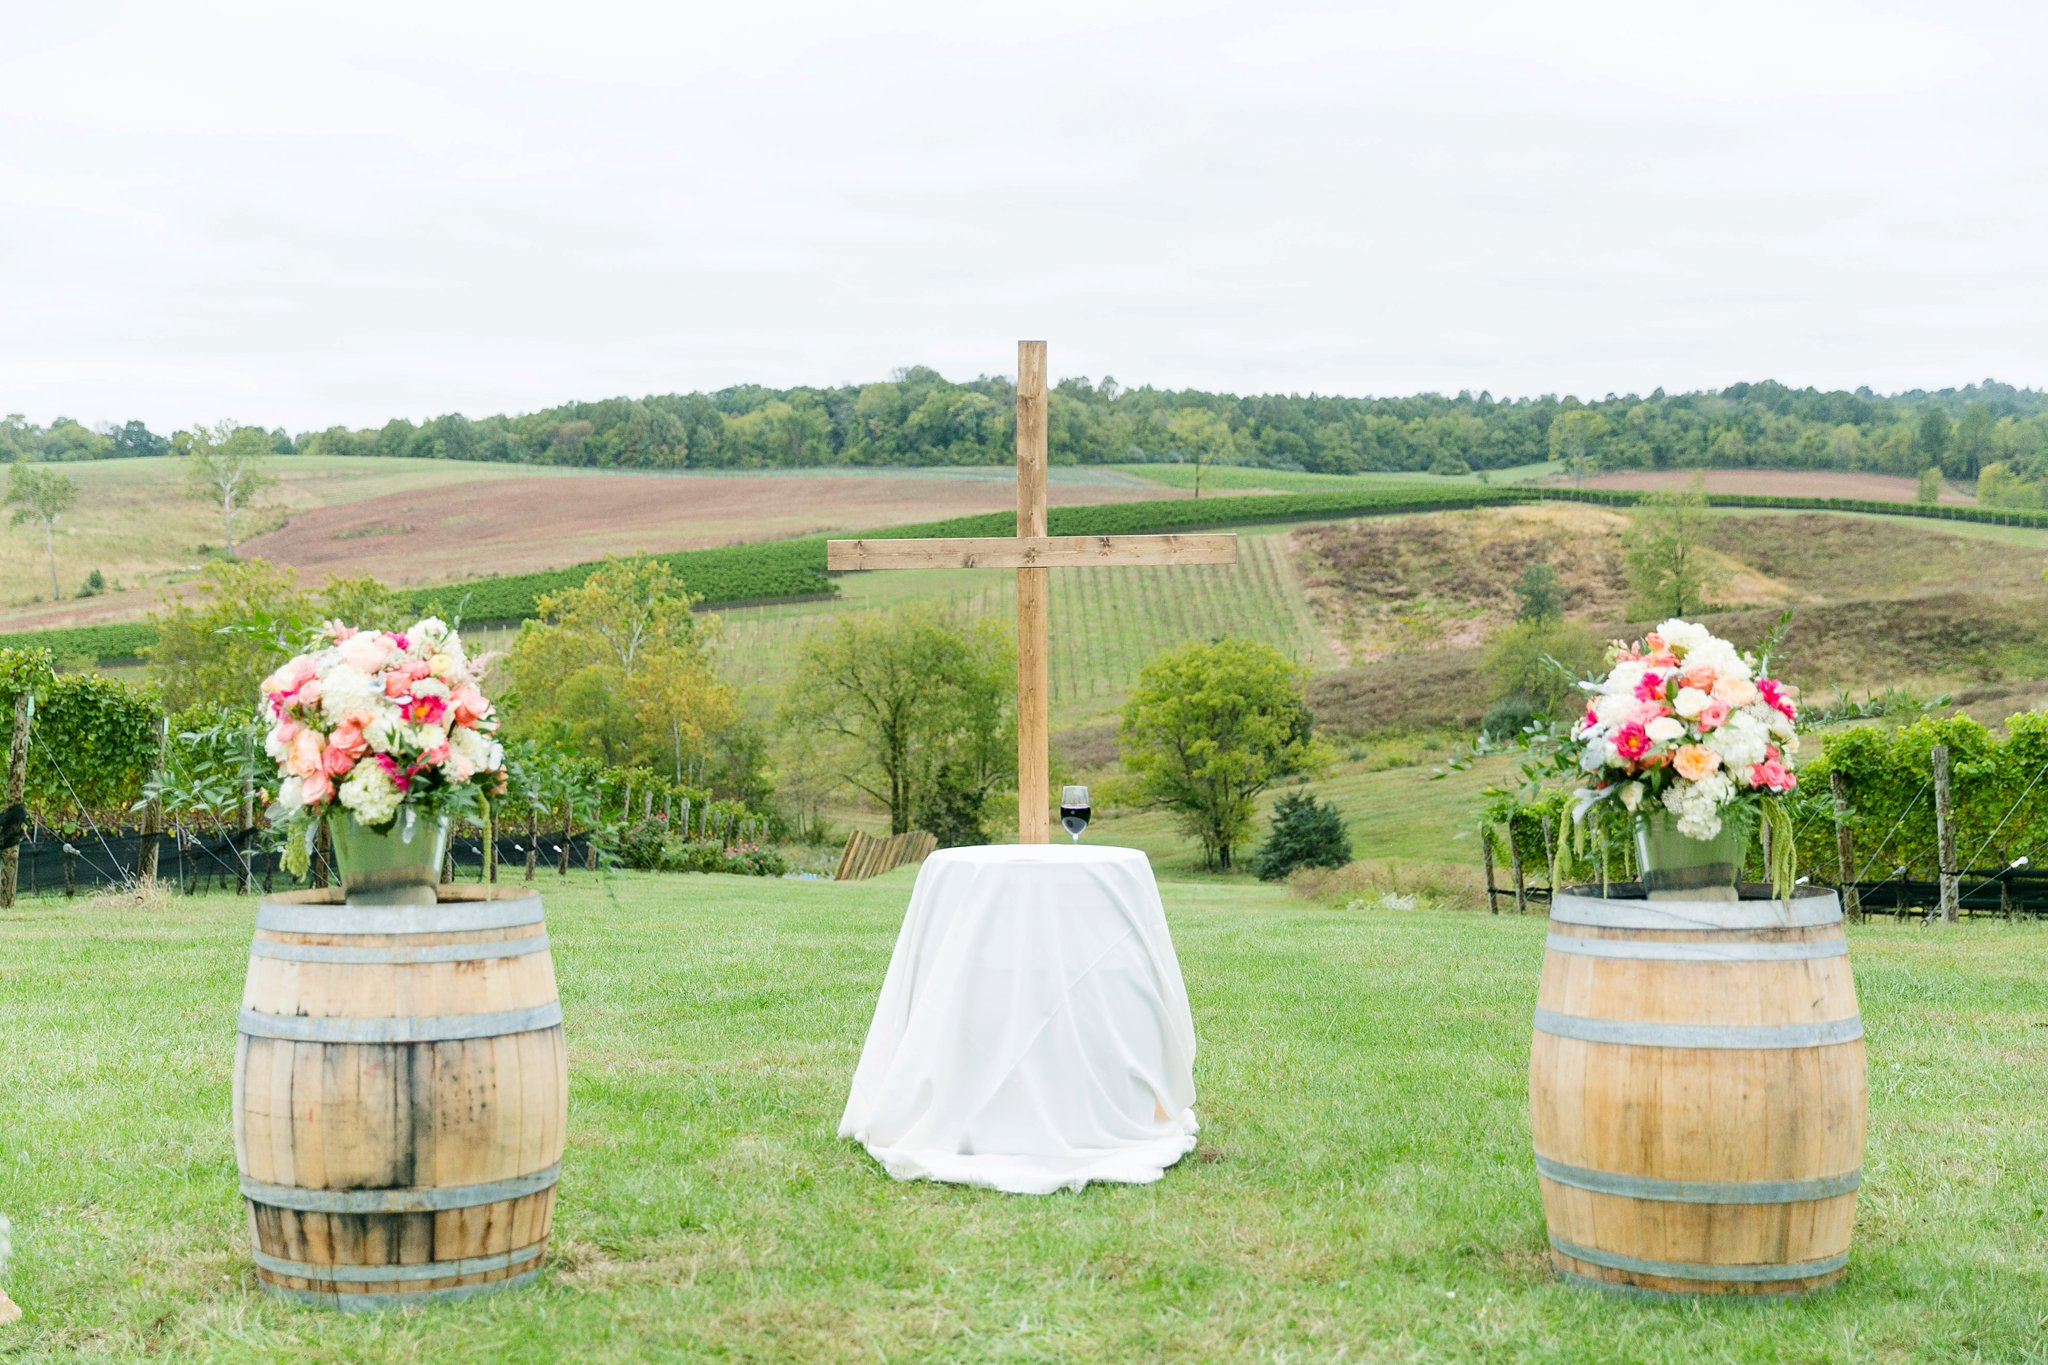 Stone Tower Winery Wedding Photos Virginia Wedding Photographer Megan Kelsey Photography Sam & Angela-121.jpg